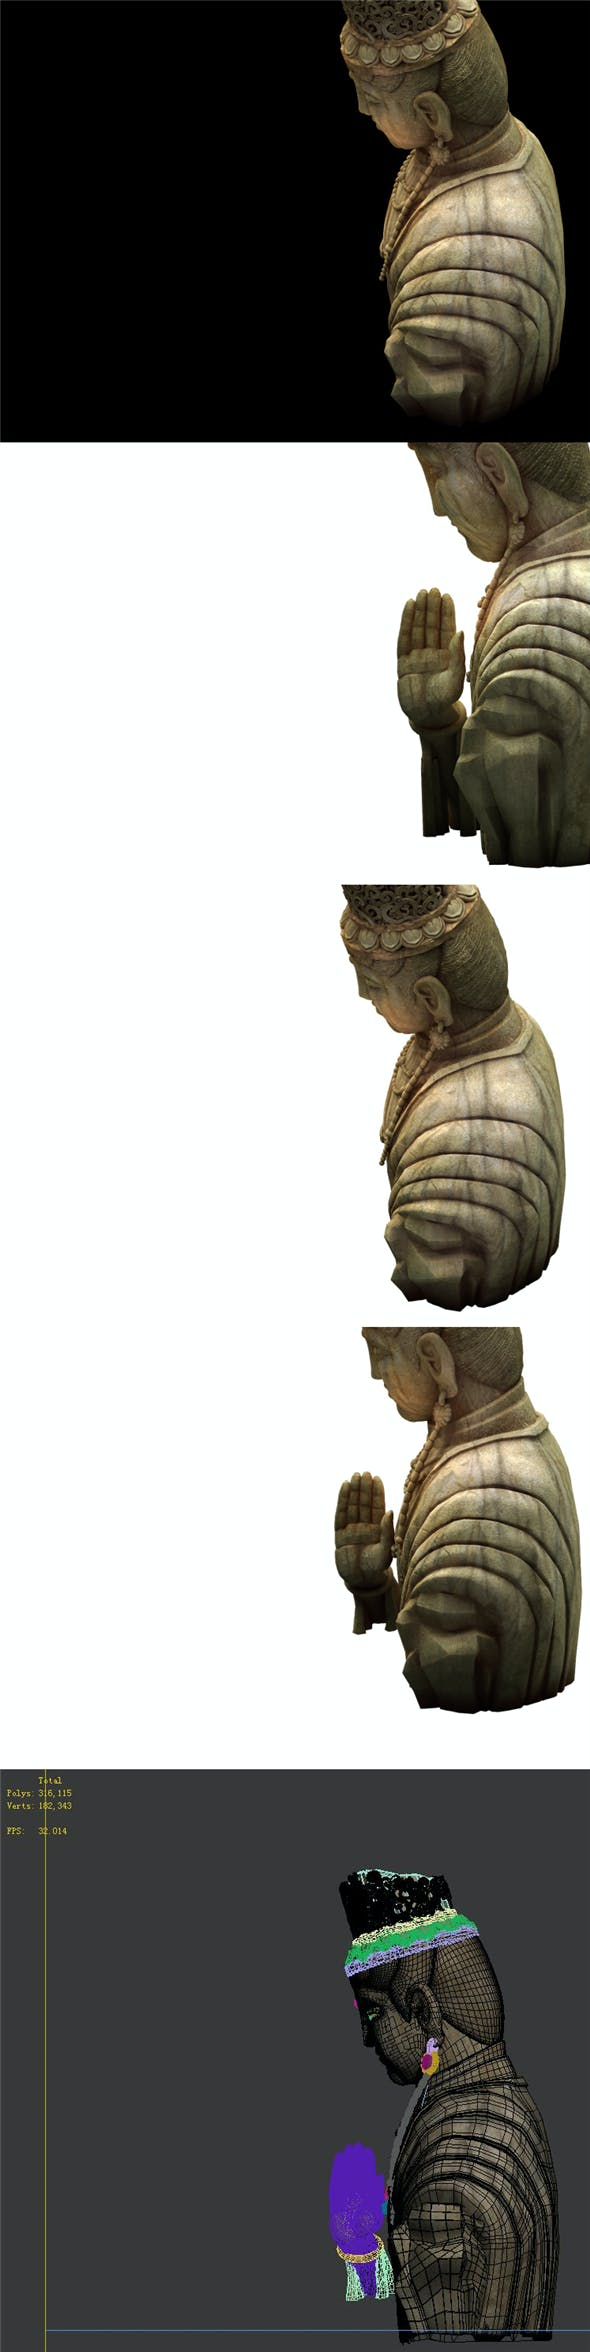 Game Model - Kasai Buddha Traces Forest statue 02 - 3DOcean Item for Sale